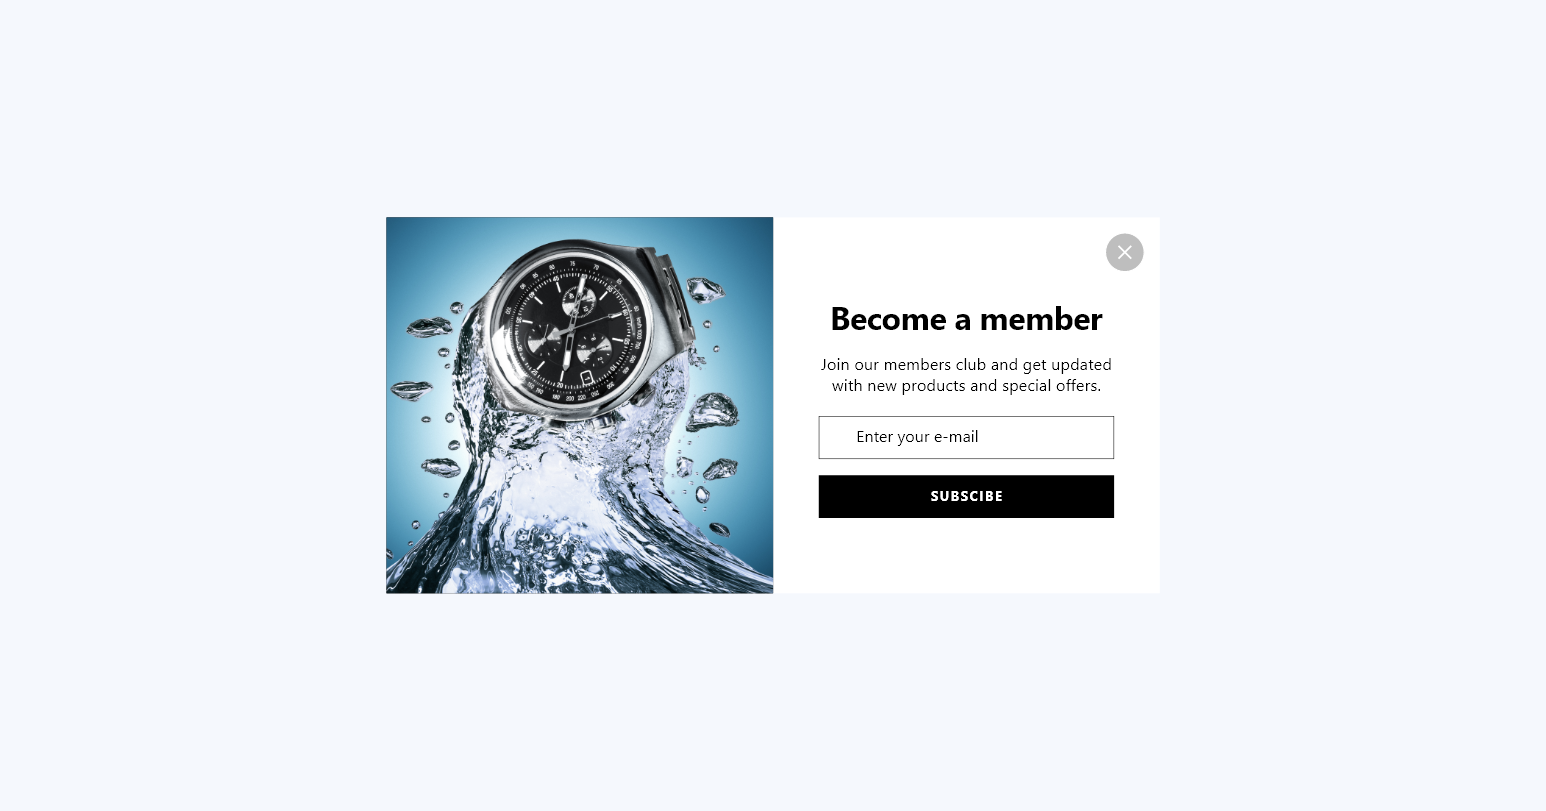 popupsmart content become a member middle popup design